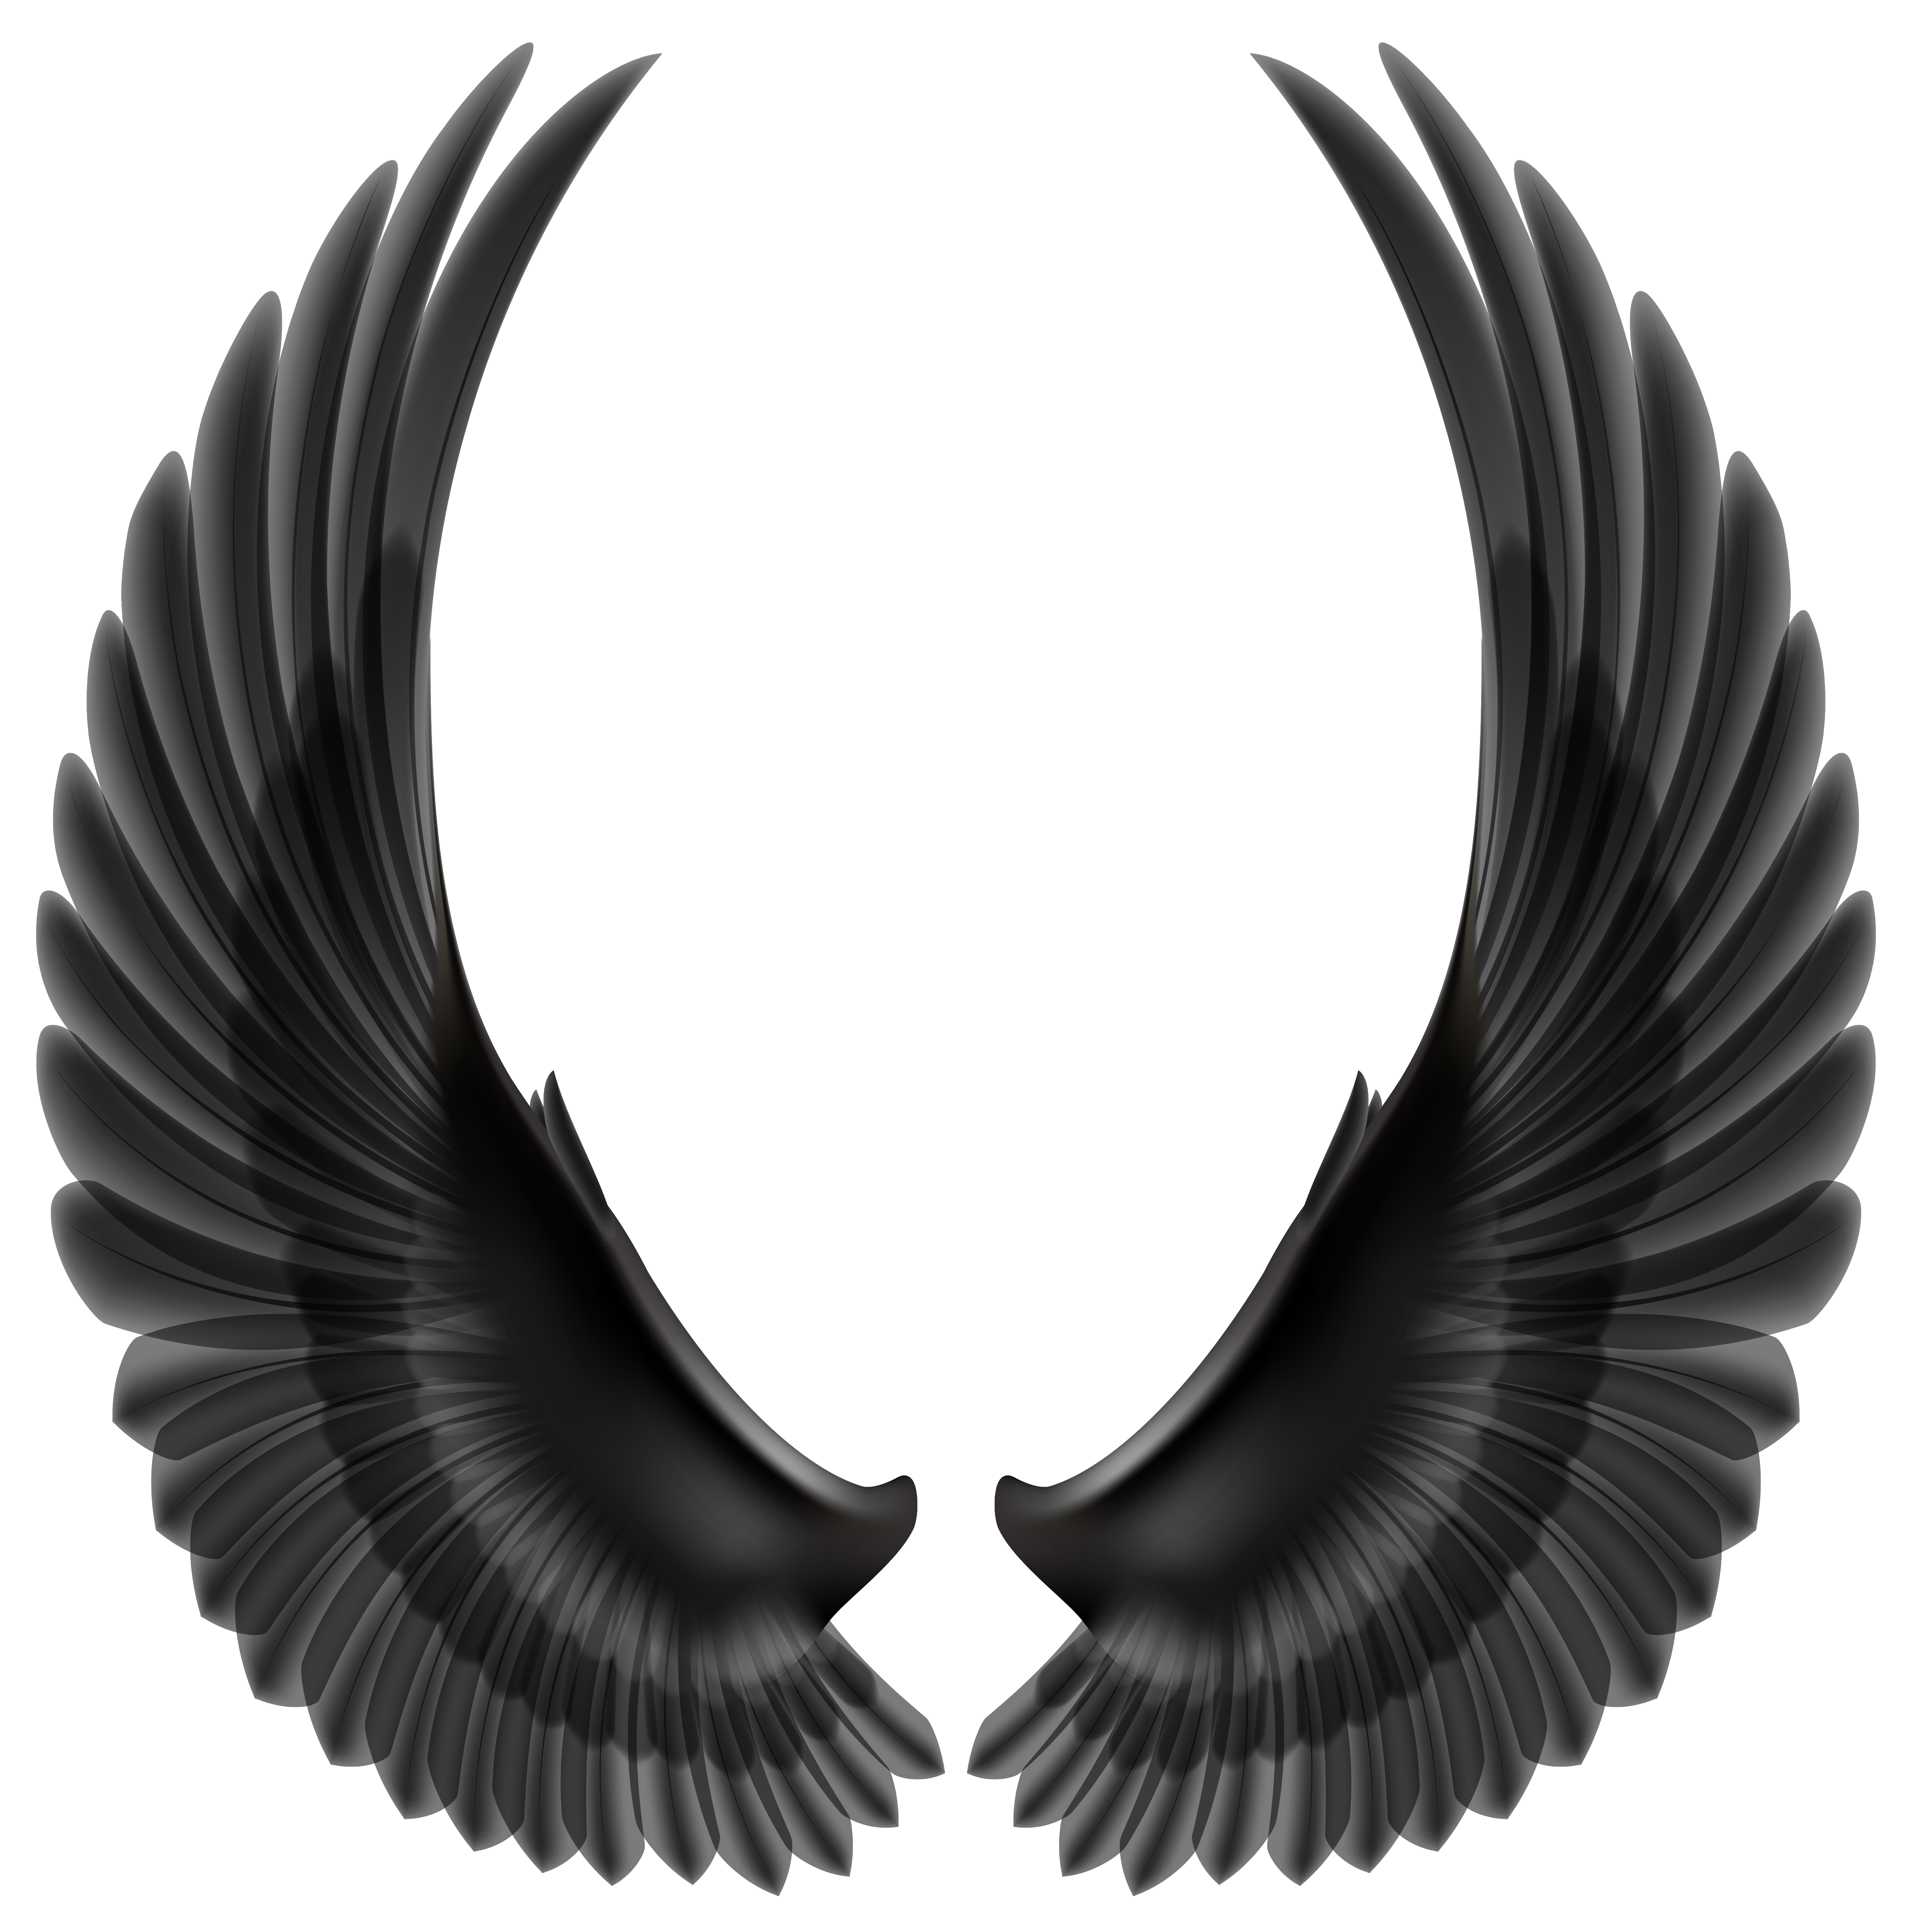 Wing clipart feather wing. Peace pencil and in